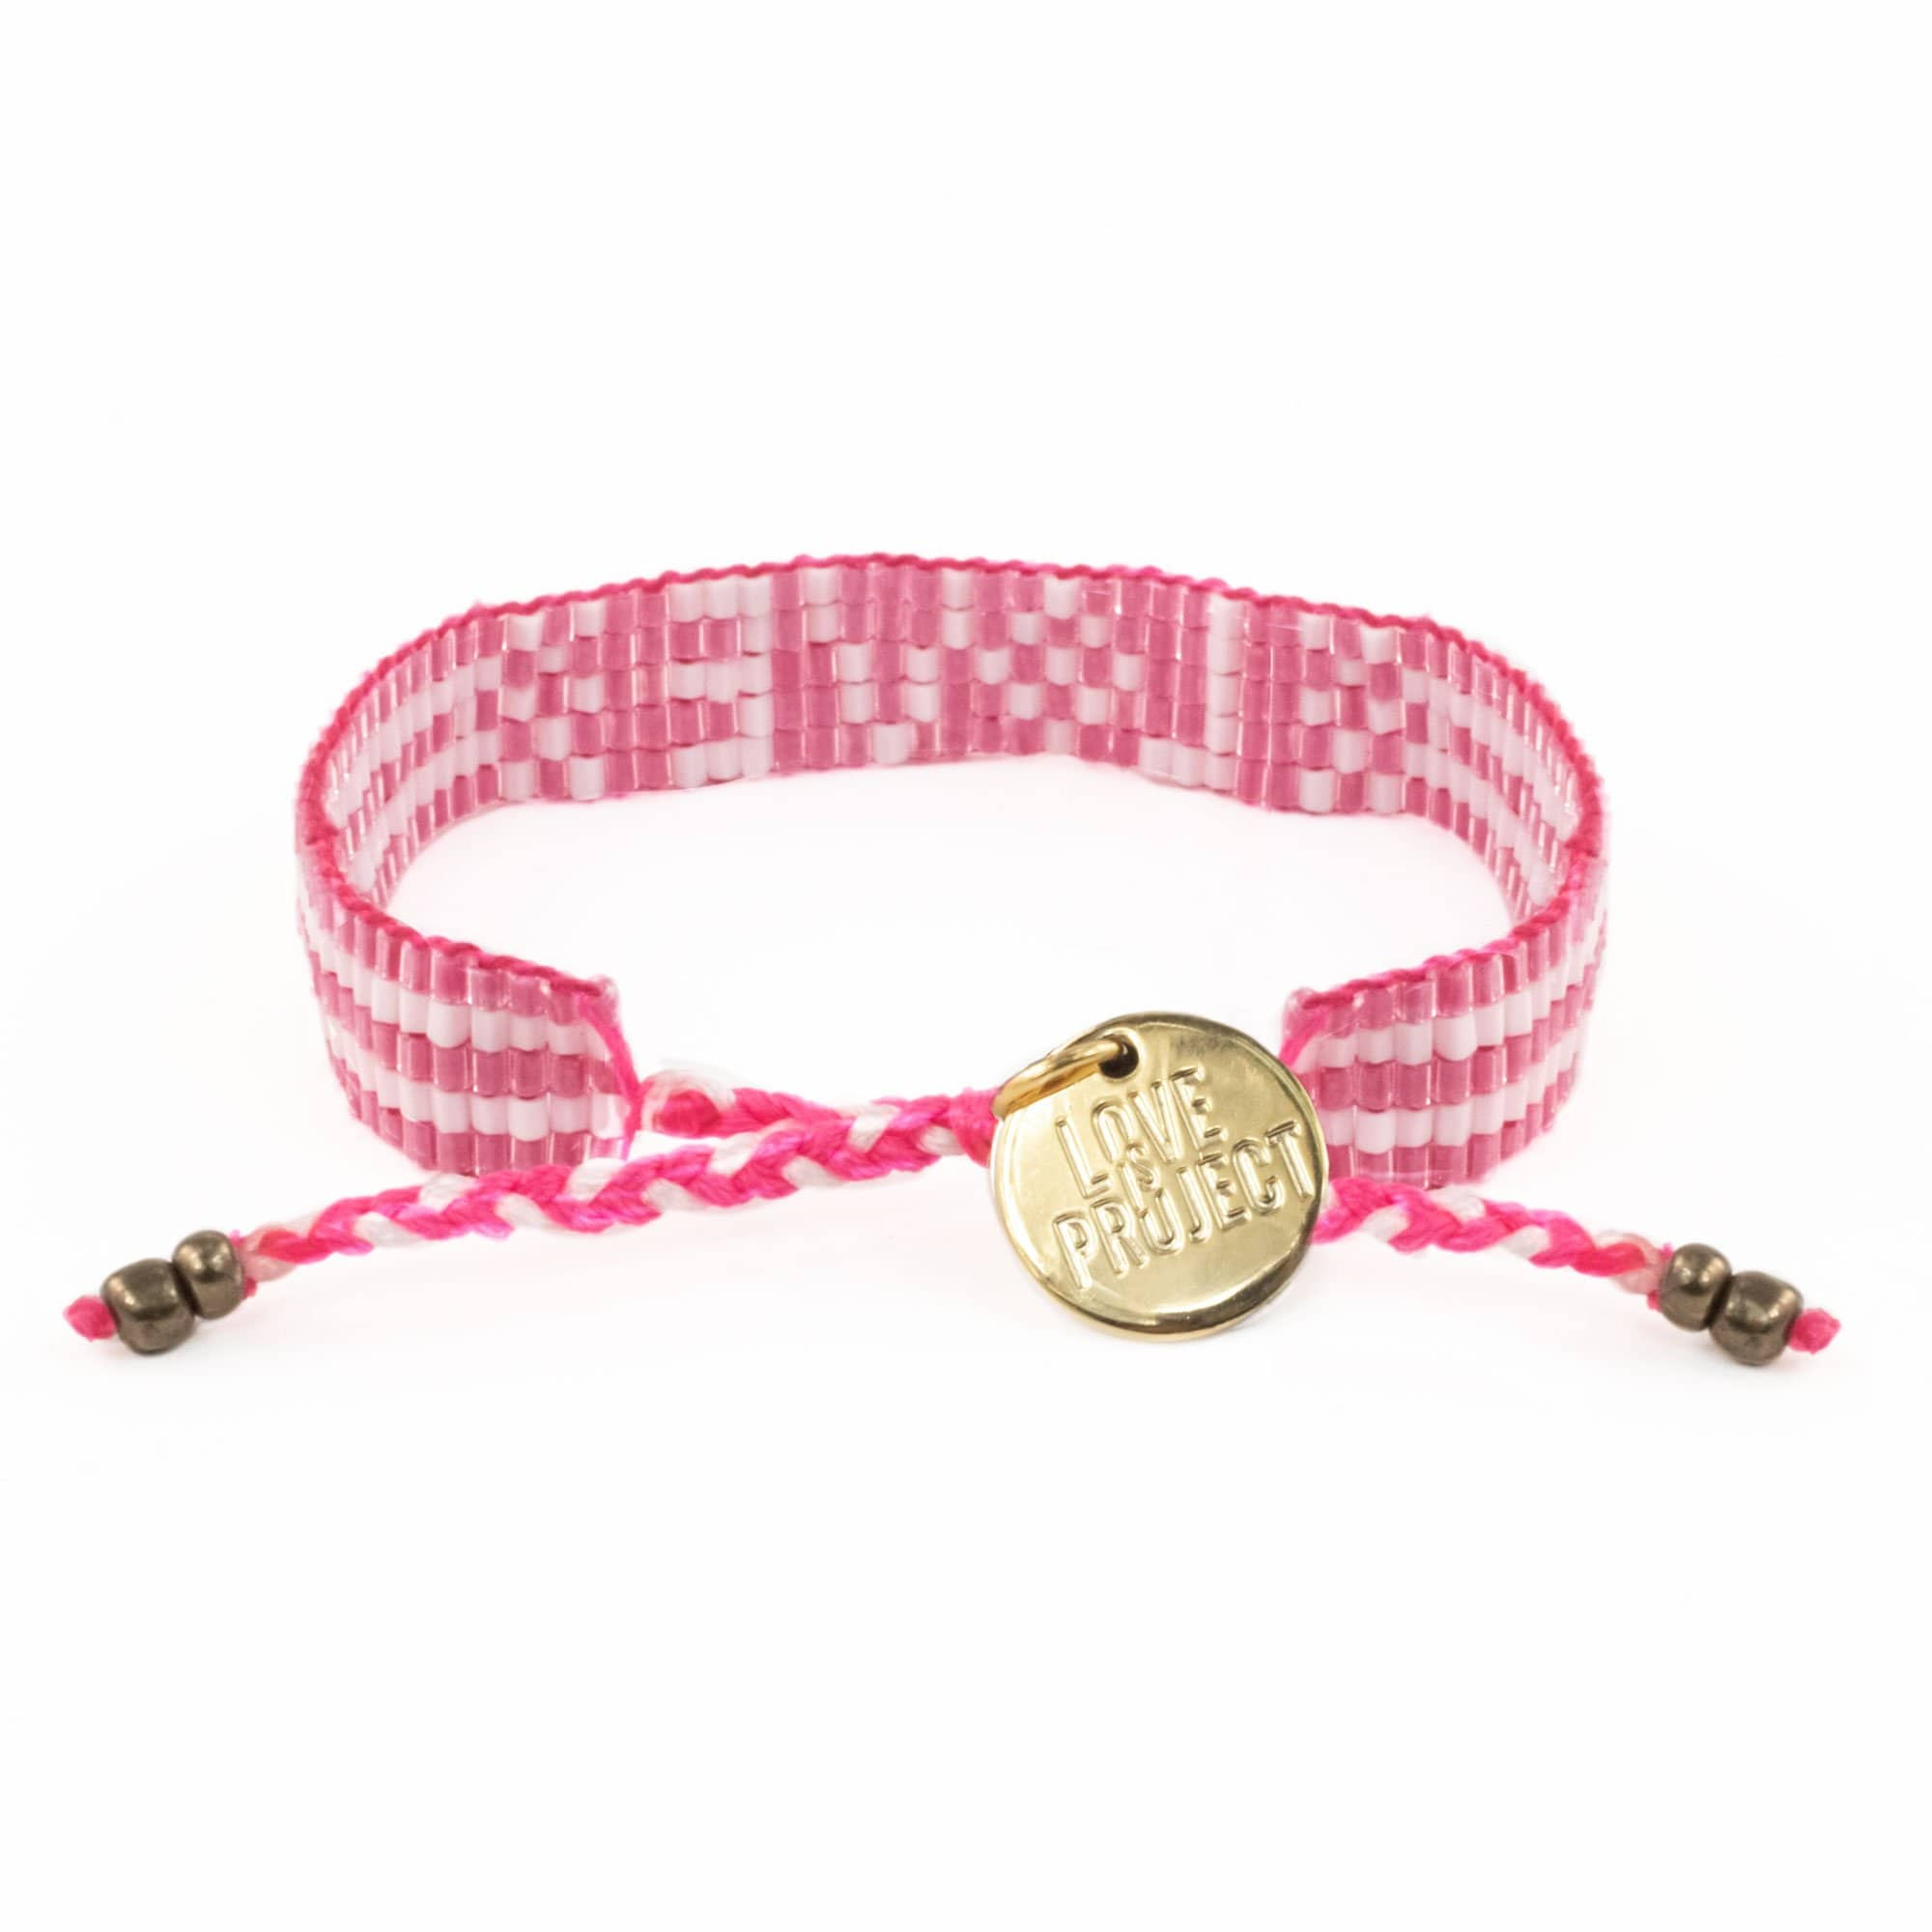 Pretty in Pink Bali Seed LOVE Bracelet